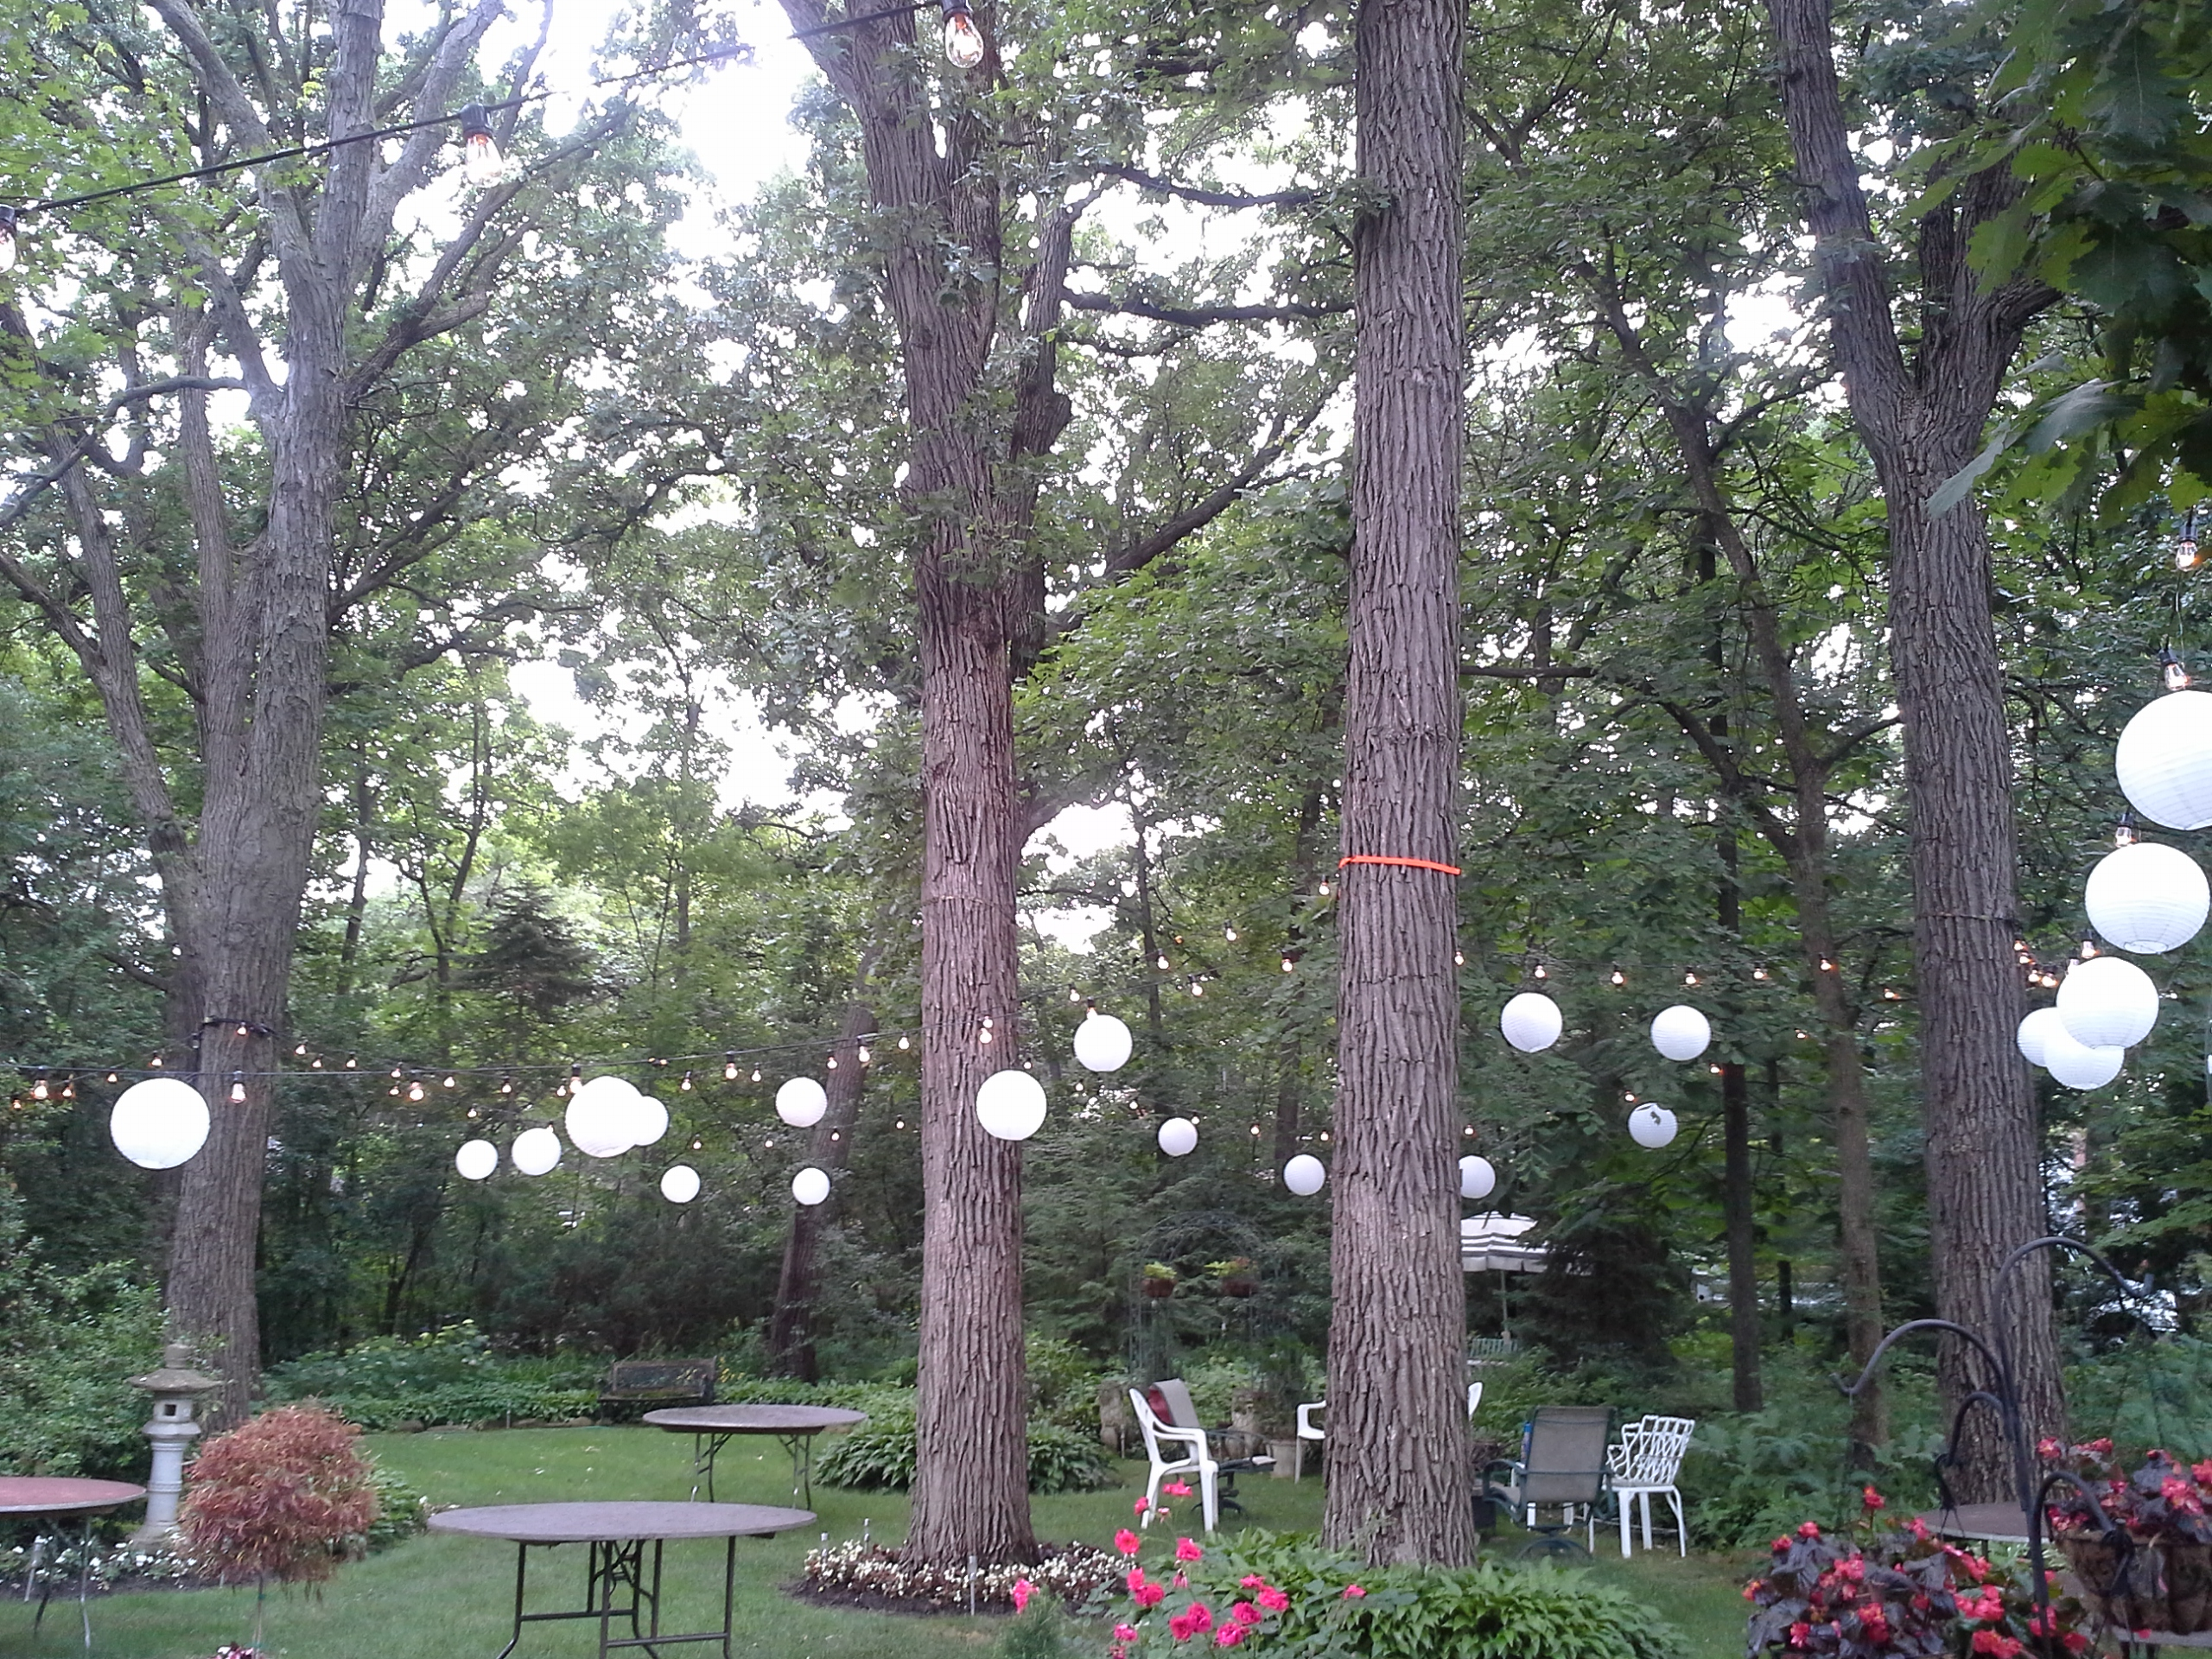 Cafe Lights and Paper Lanterns at a private residence